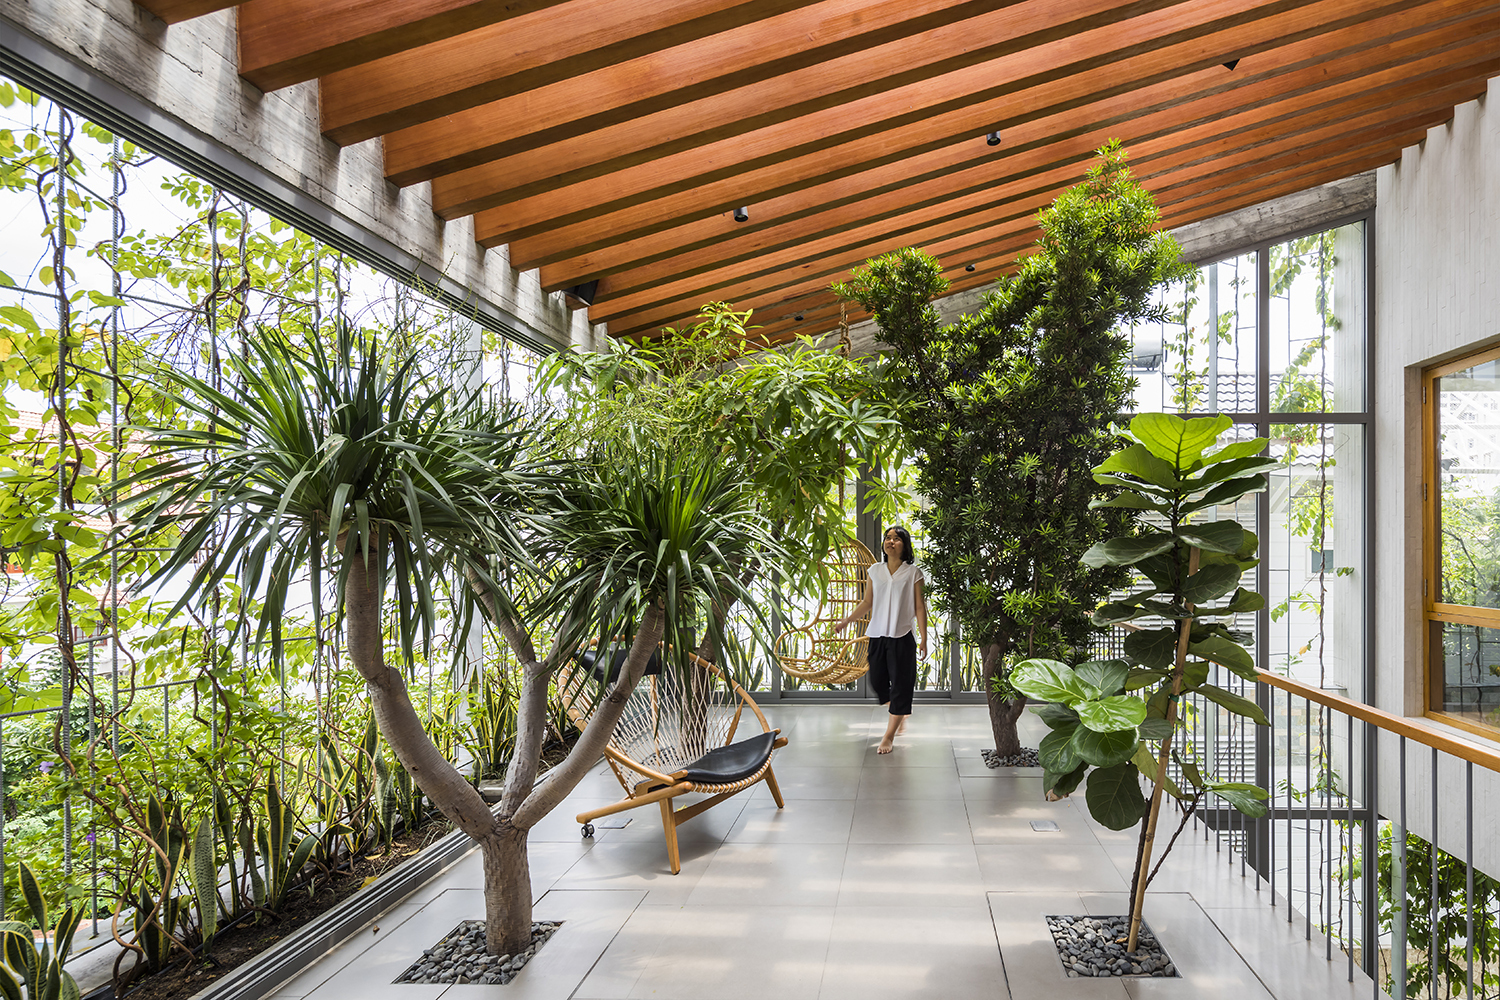 Biophilia: Bringing Nature into Interior Design